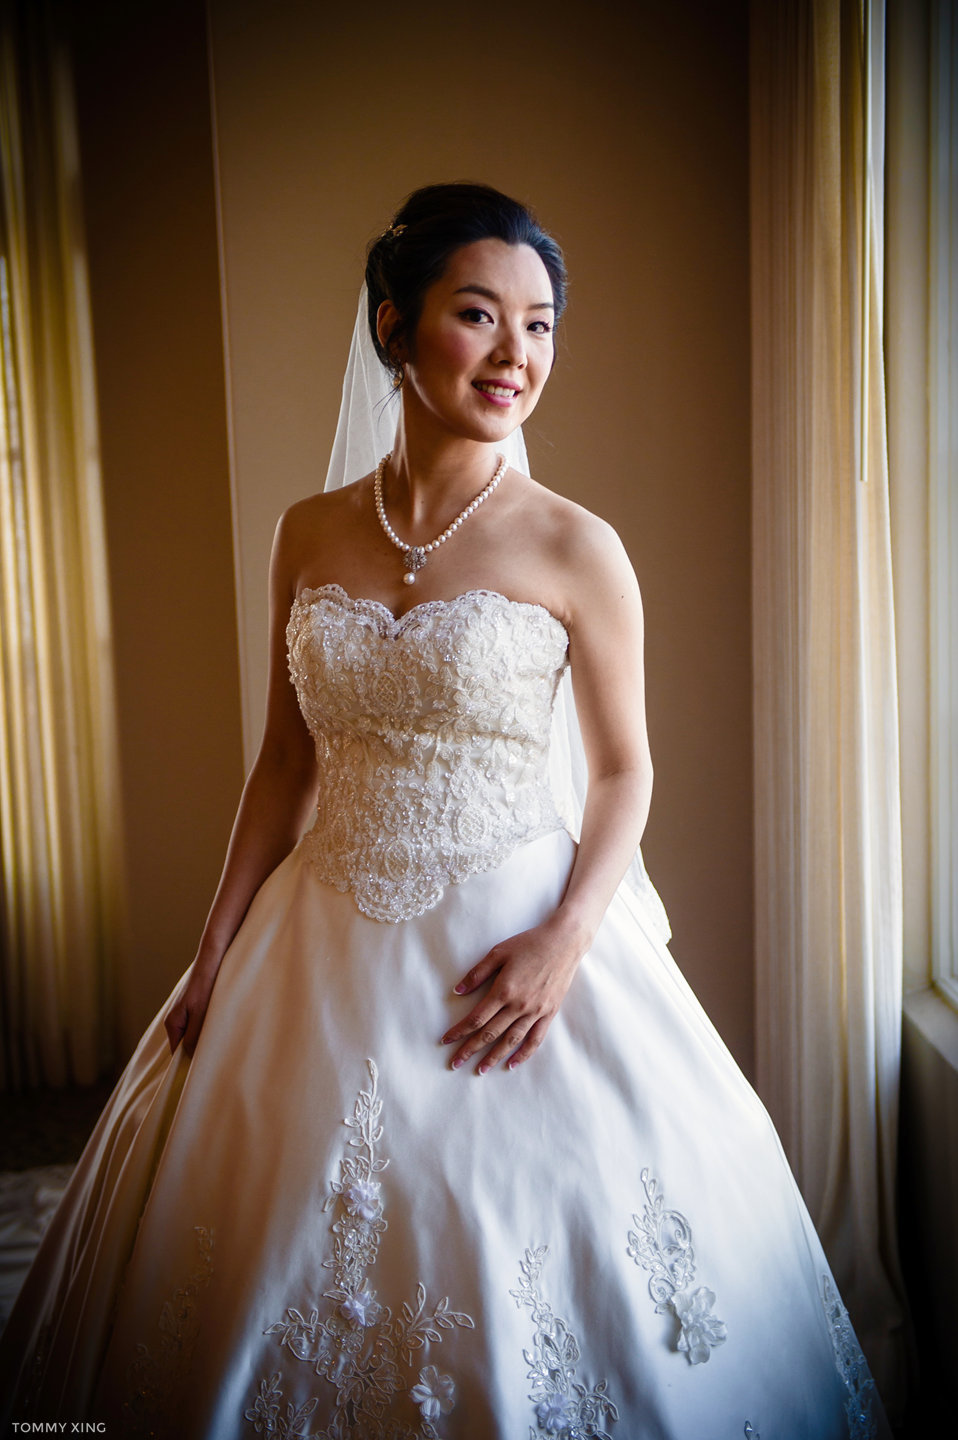 Los Angeles Wedding Photography Neighborhood Church Ranho Palos Verdes  Tommy Xing Photography 洛杉矶旧金山婚礼婚纱照摄影师011.jpg